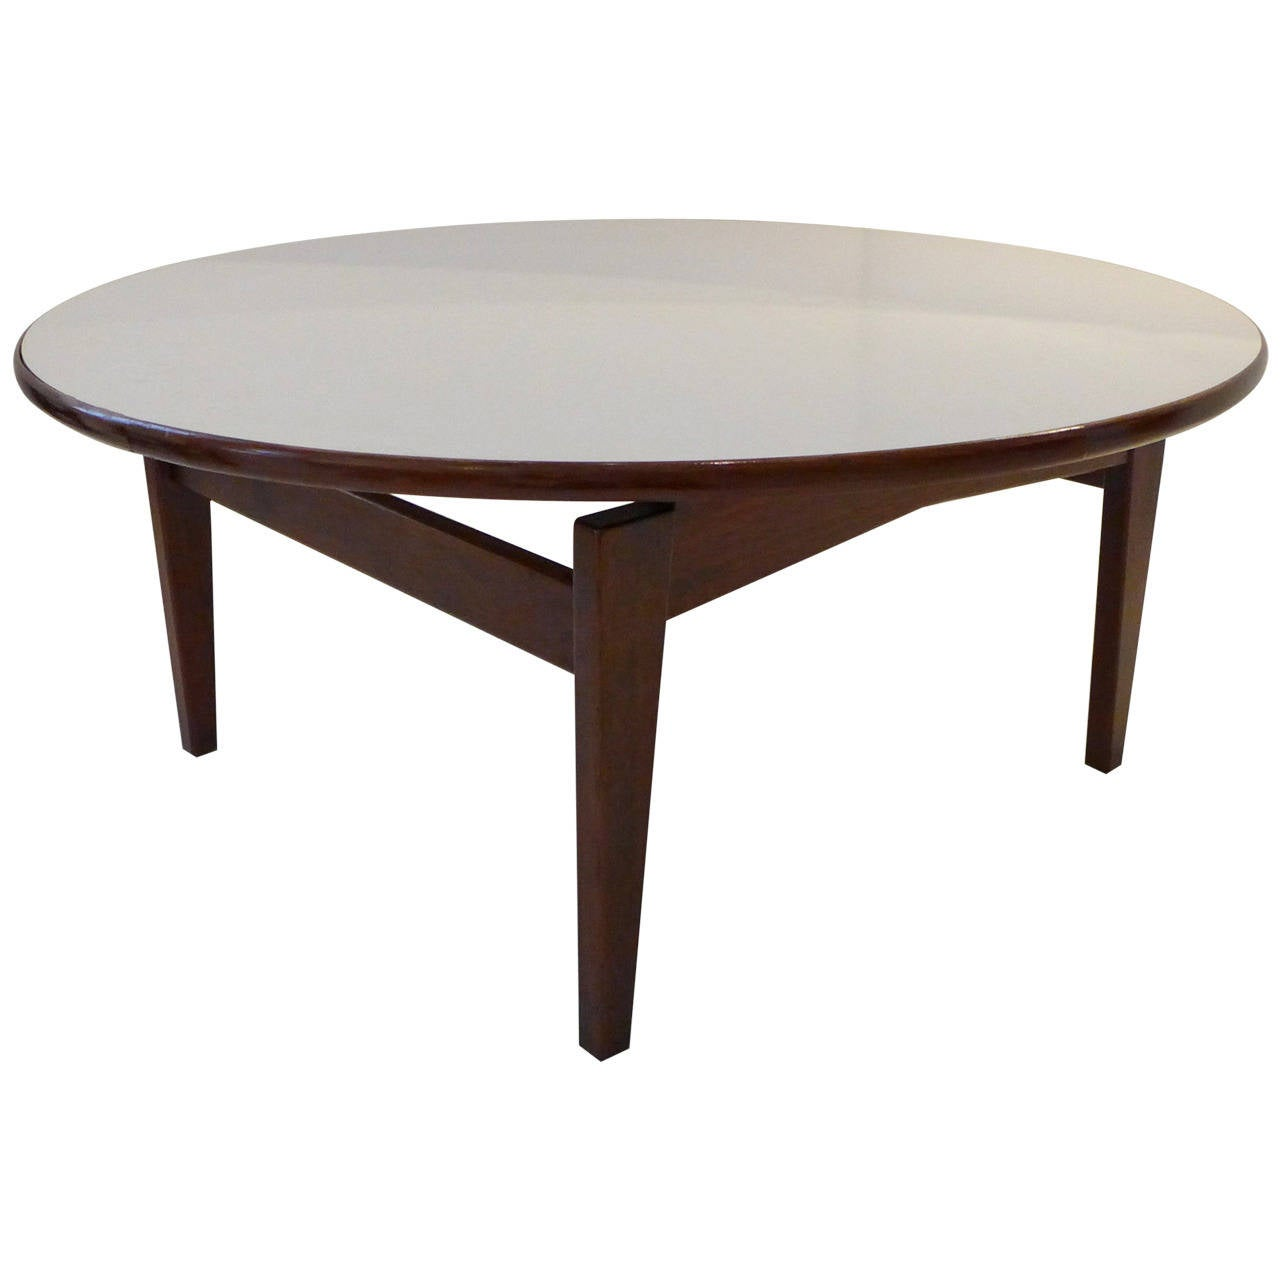 Jens risom cocktail table with white laminate top for sale for Cocktail tables for sale used